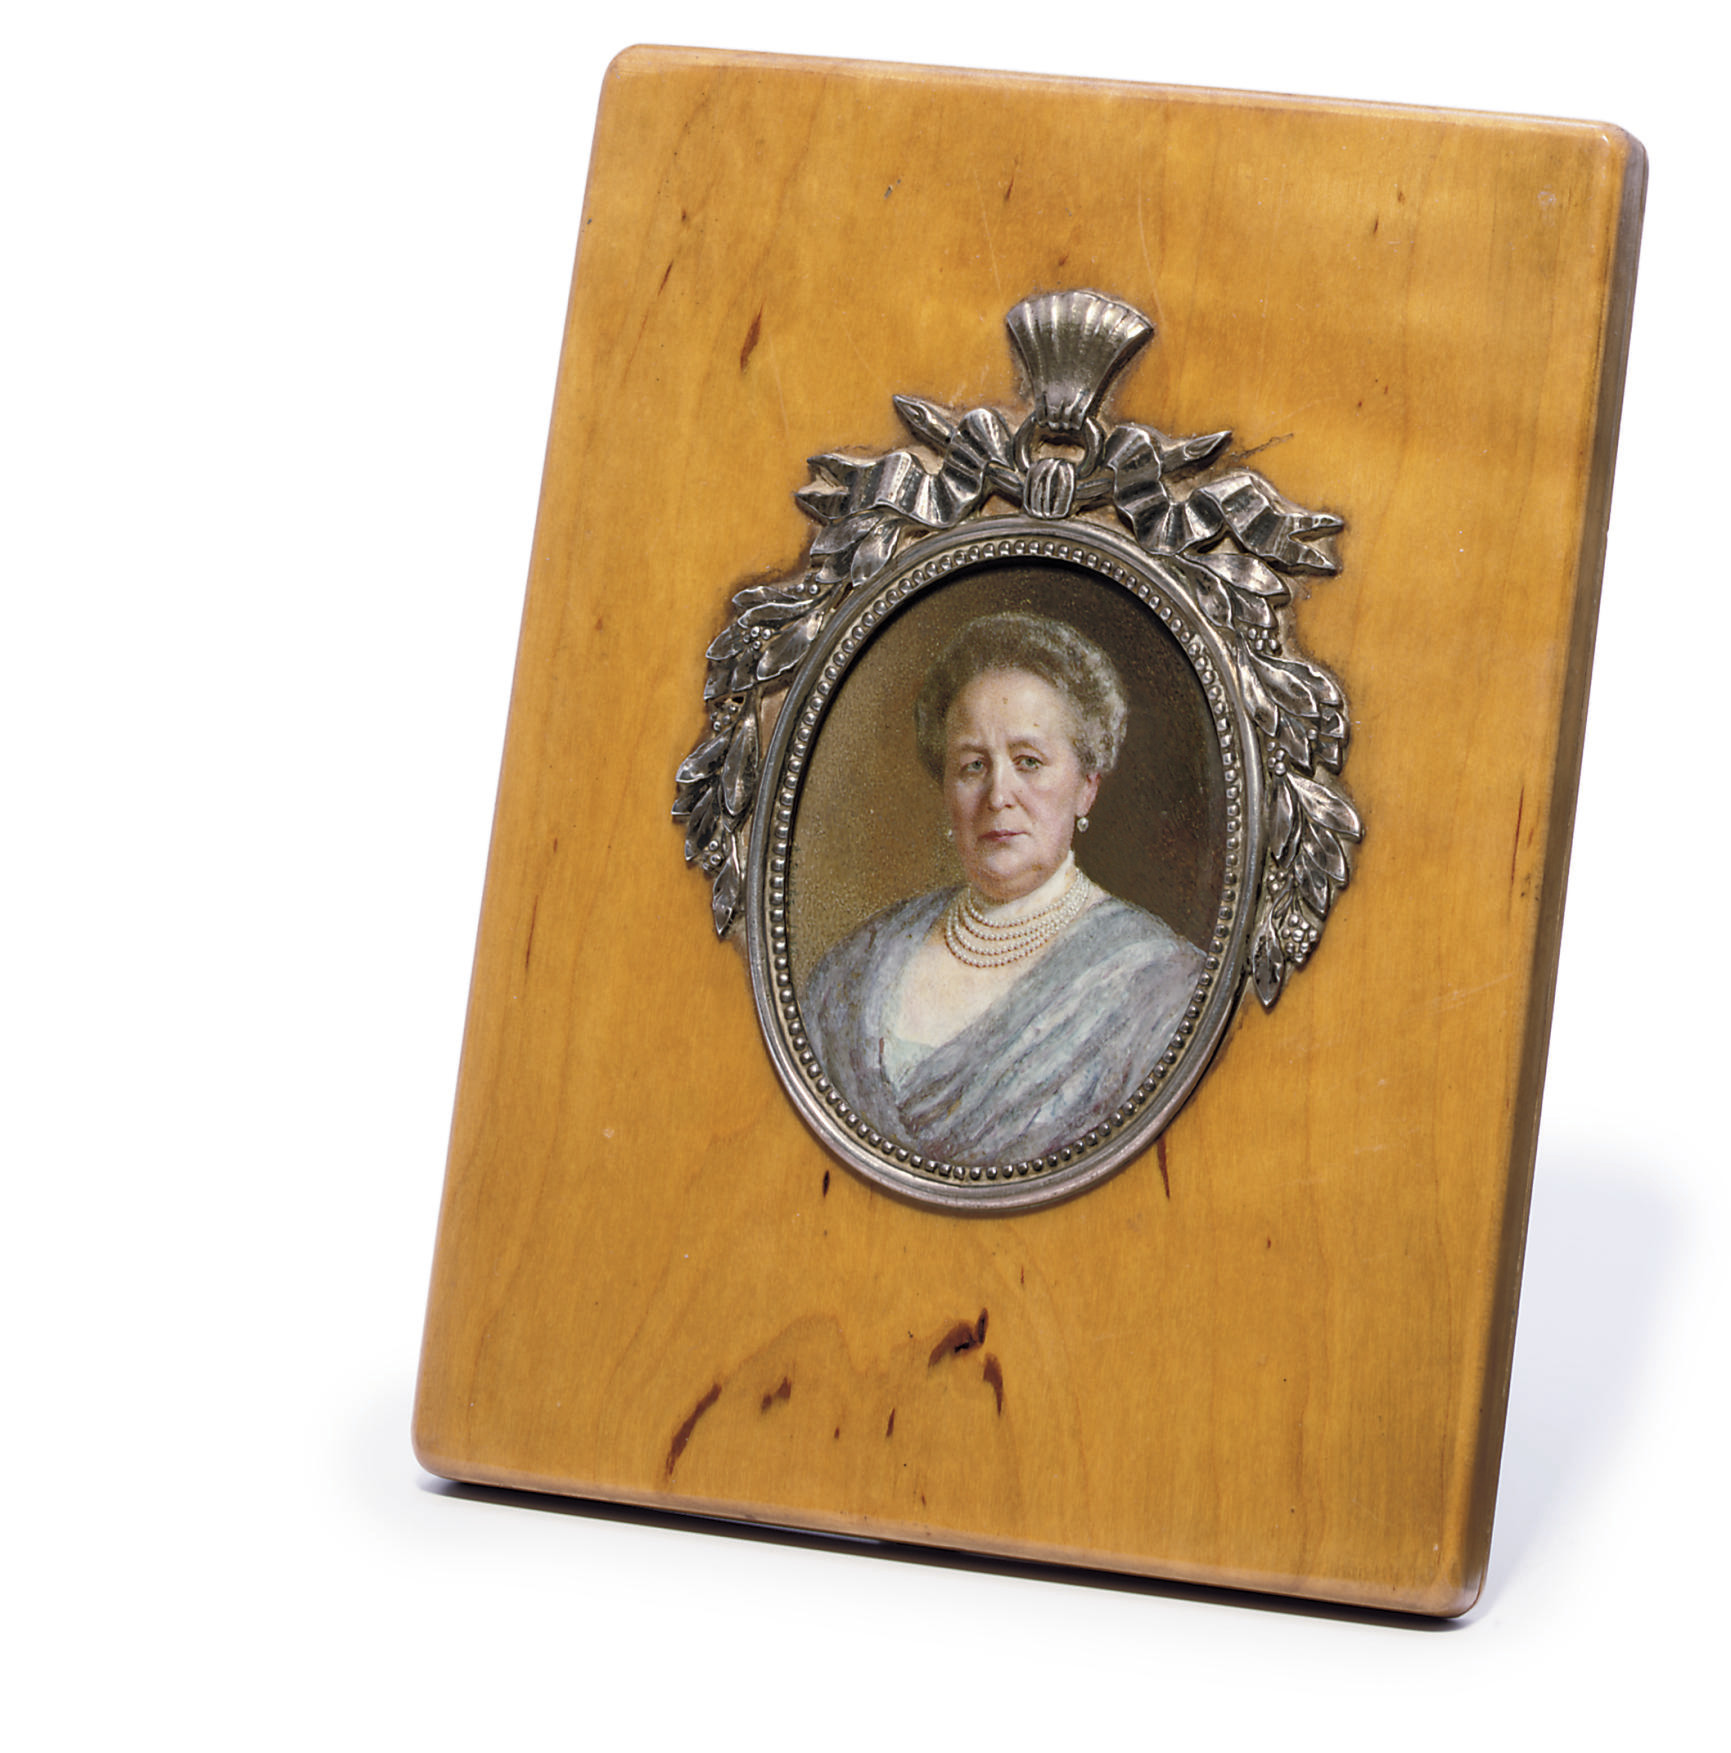 A silver-mounted wooden frame